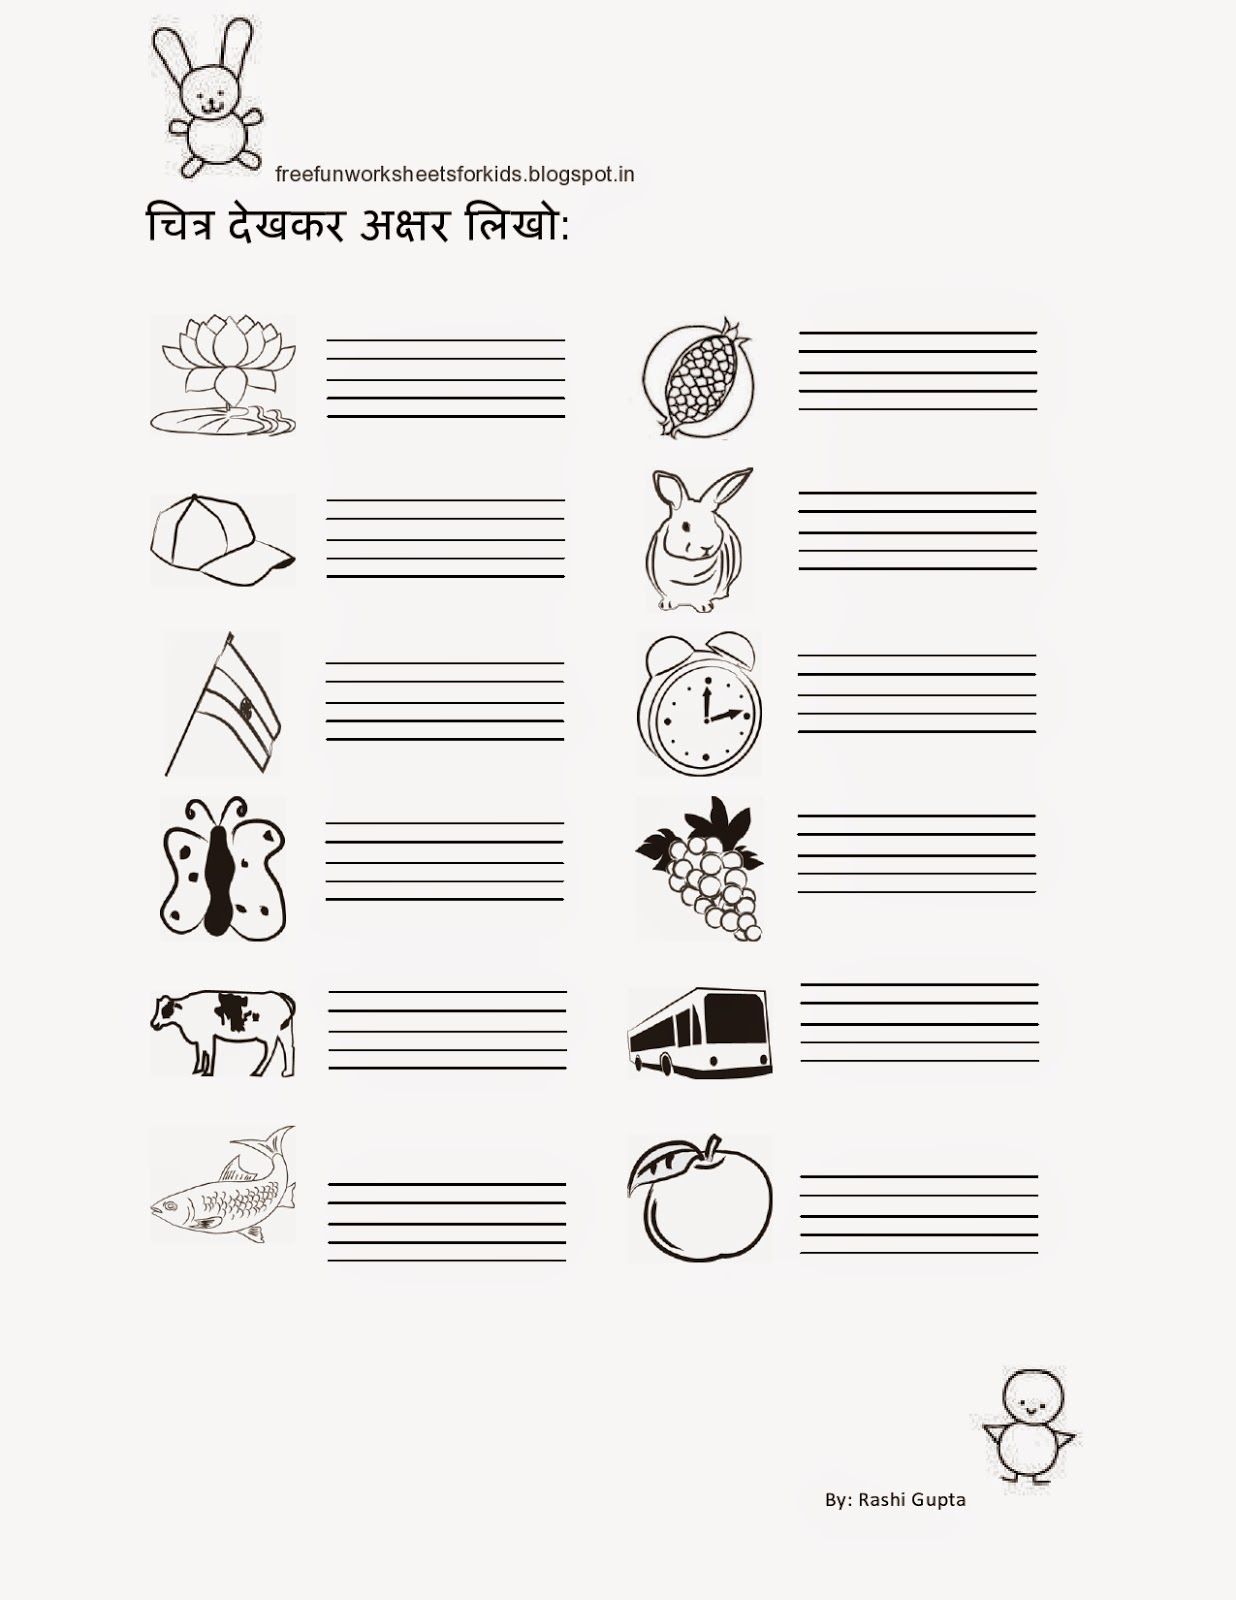 small resolution of Free Fun Worksheets For Kids: Free Printable Fun Hindi Worksheets for Class  KG - चित्र देखकर अक्षर लिखो